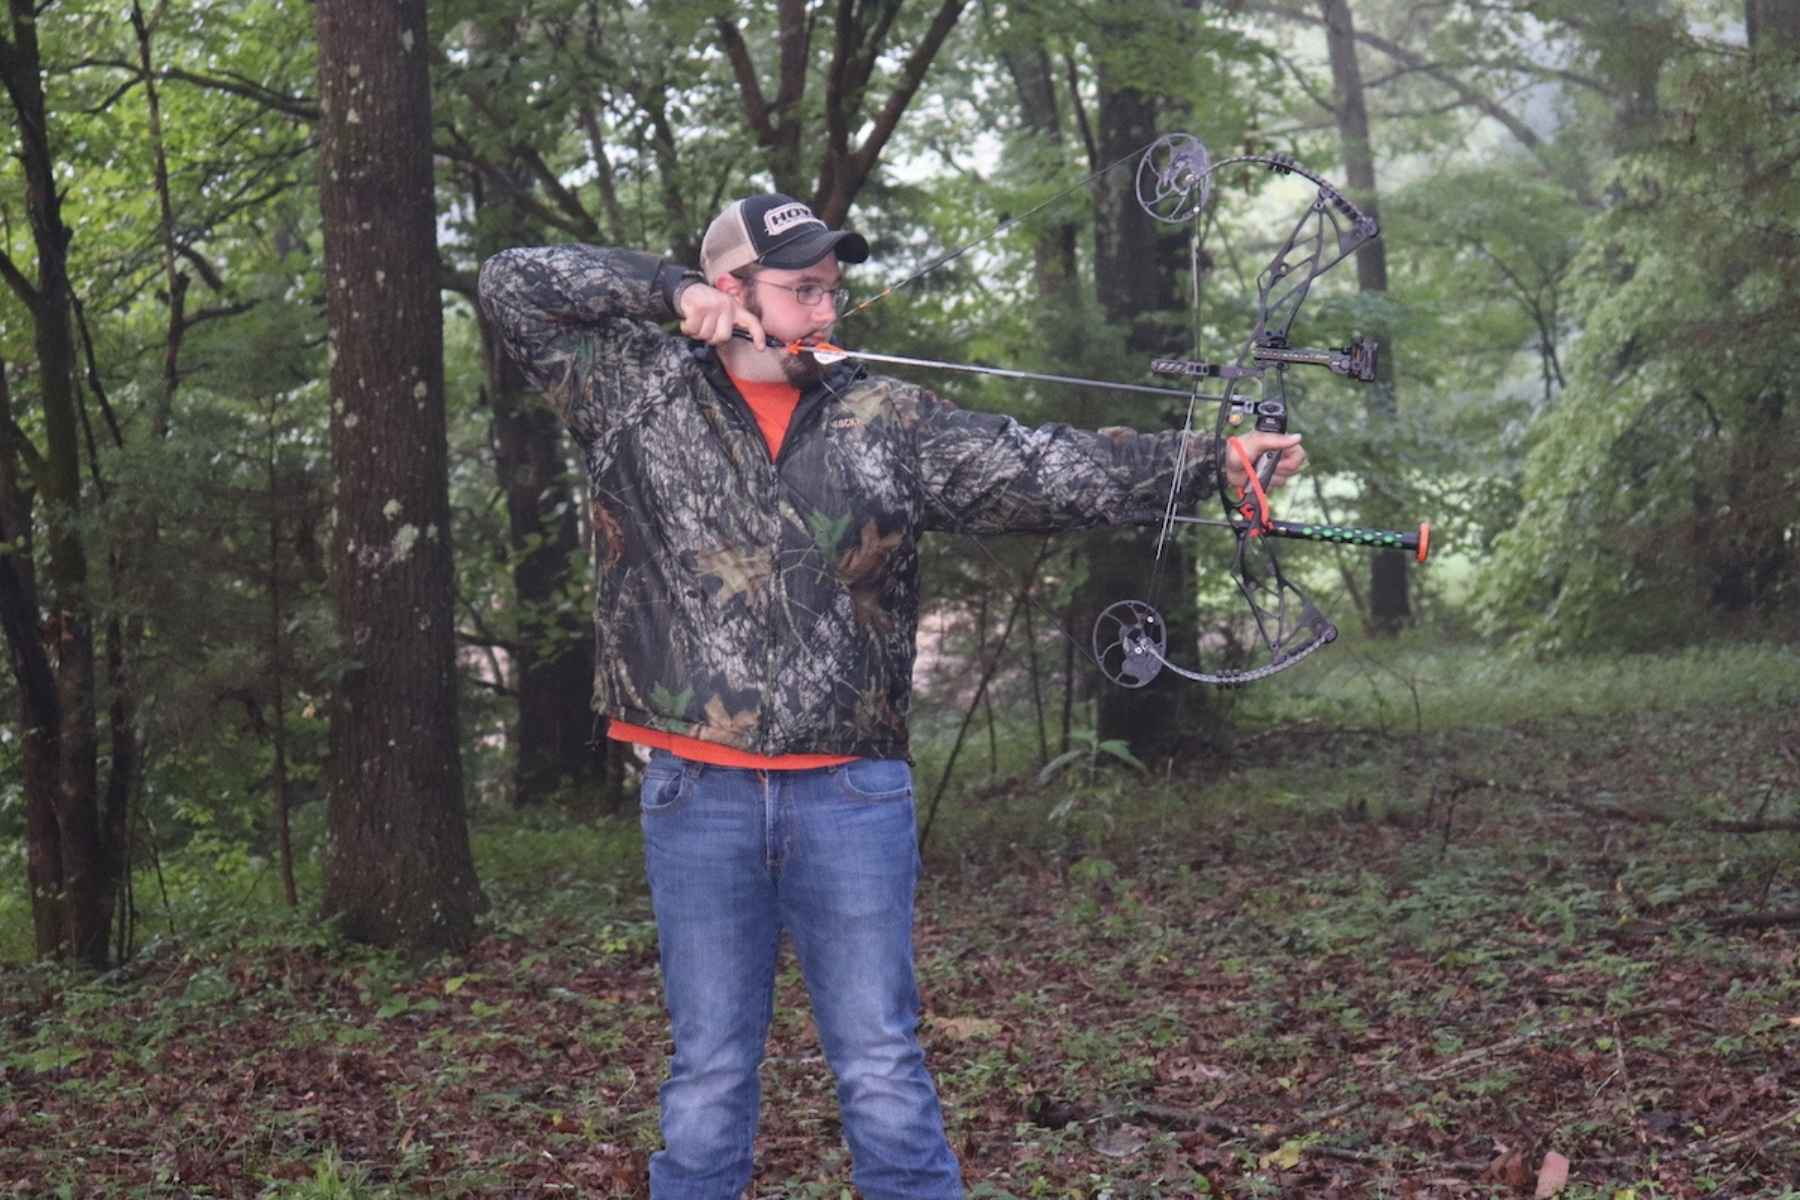 a man drawing a compound bow in the woods